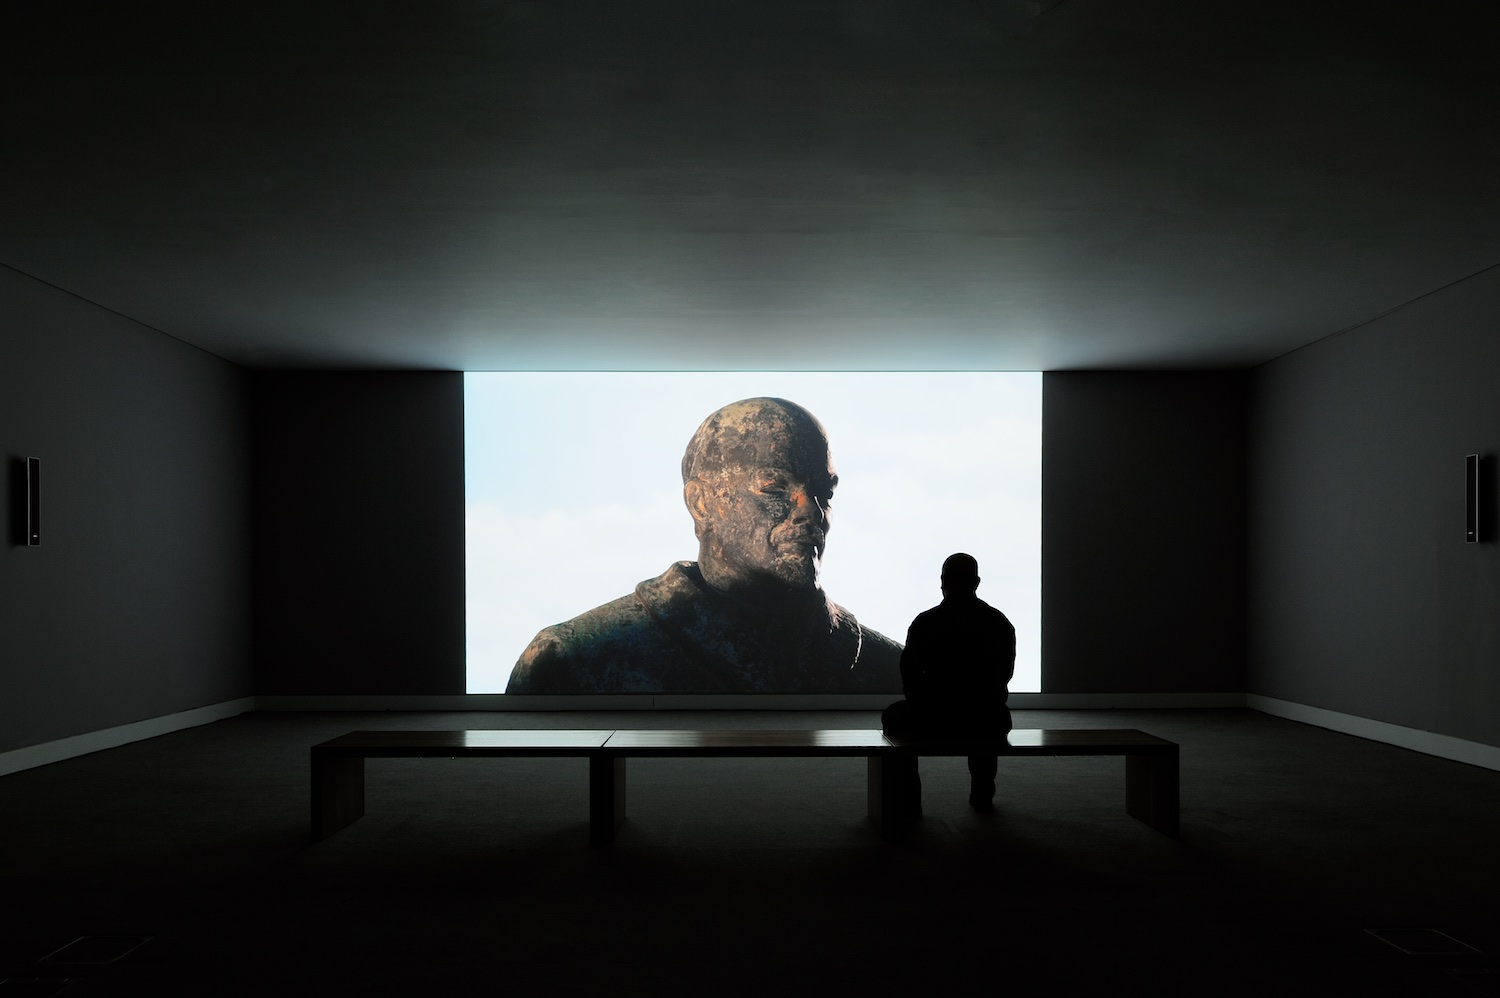 Carey Young, 2010, HD video, 10 minutes 21 seconds, Installation view at mima, Middlesbrough. Photo: Thierry Bal